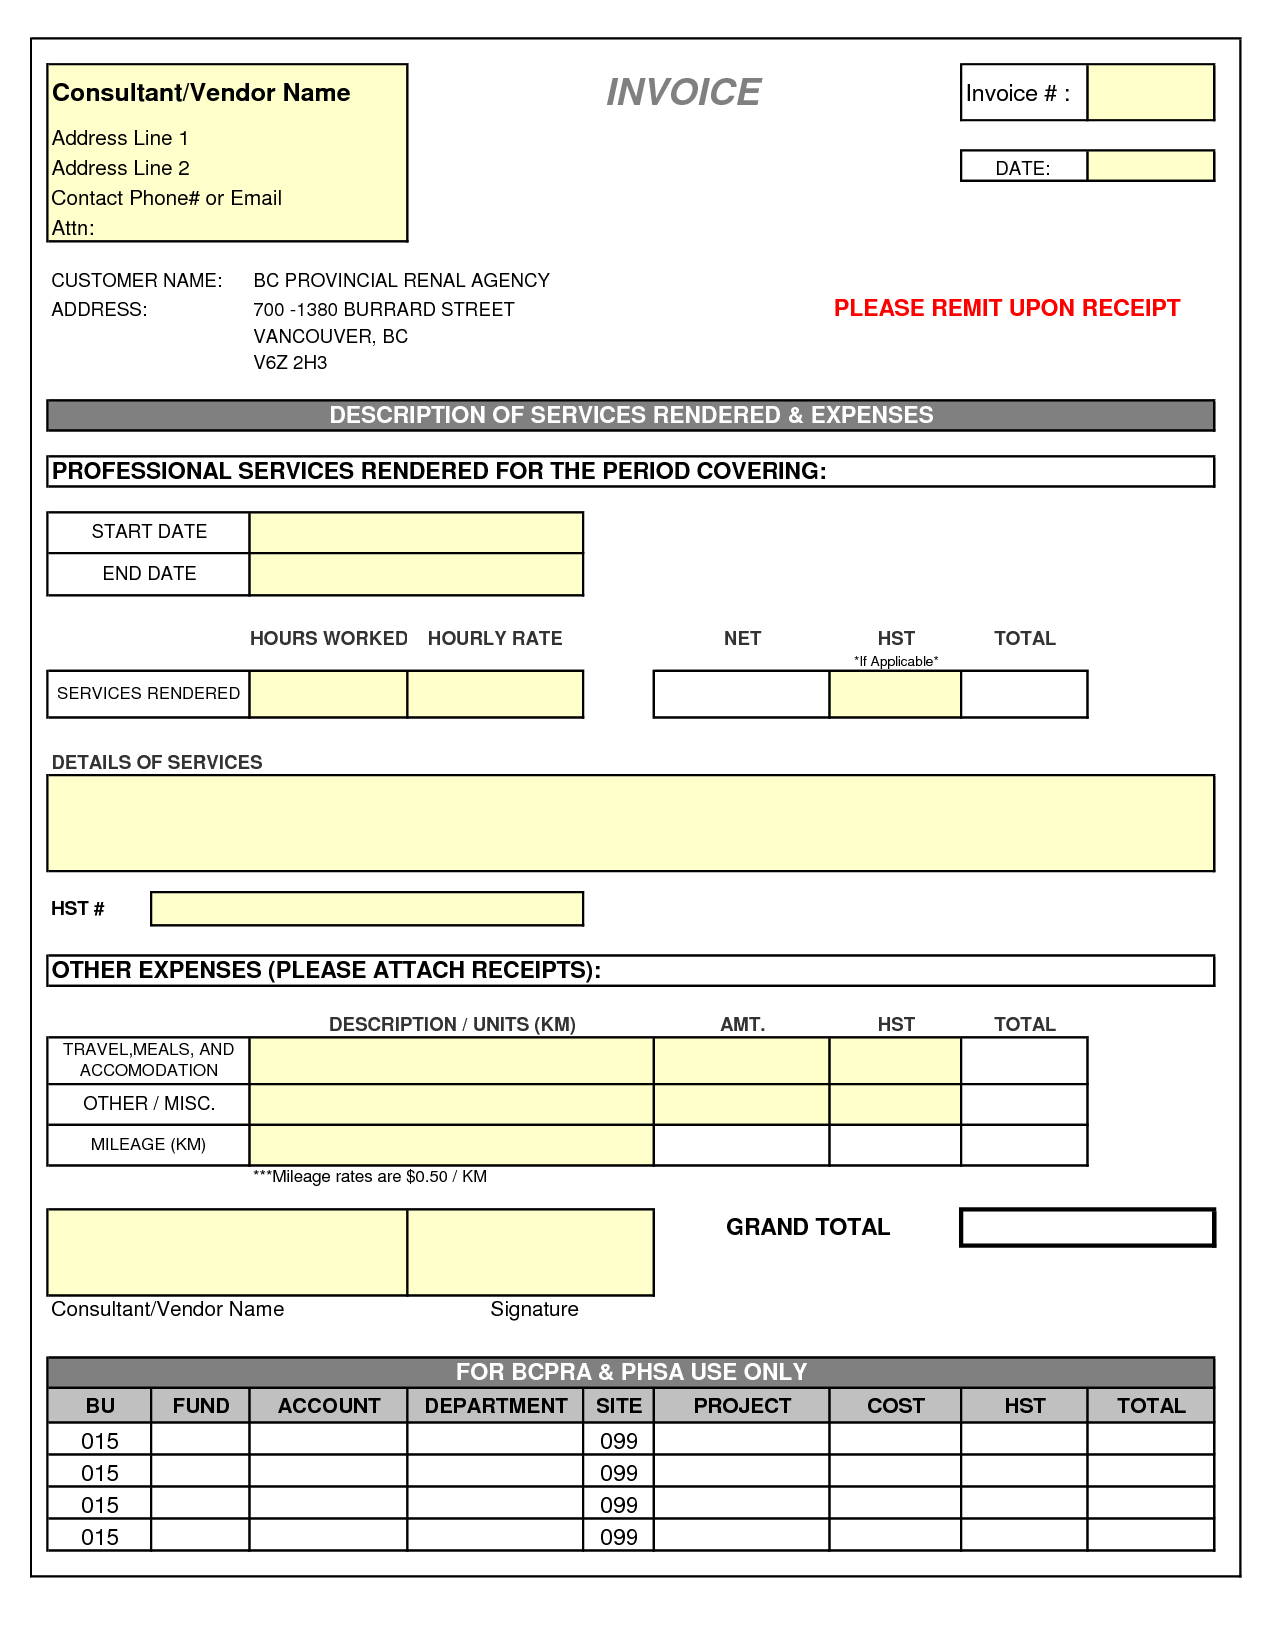 Consultant Invoice Template Doc Invoice Example - Consulting invoice template word for service business